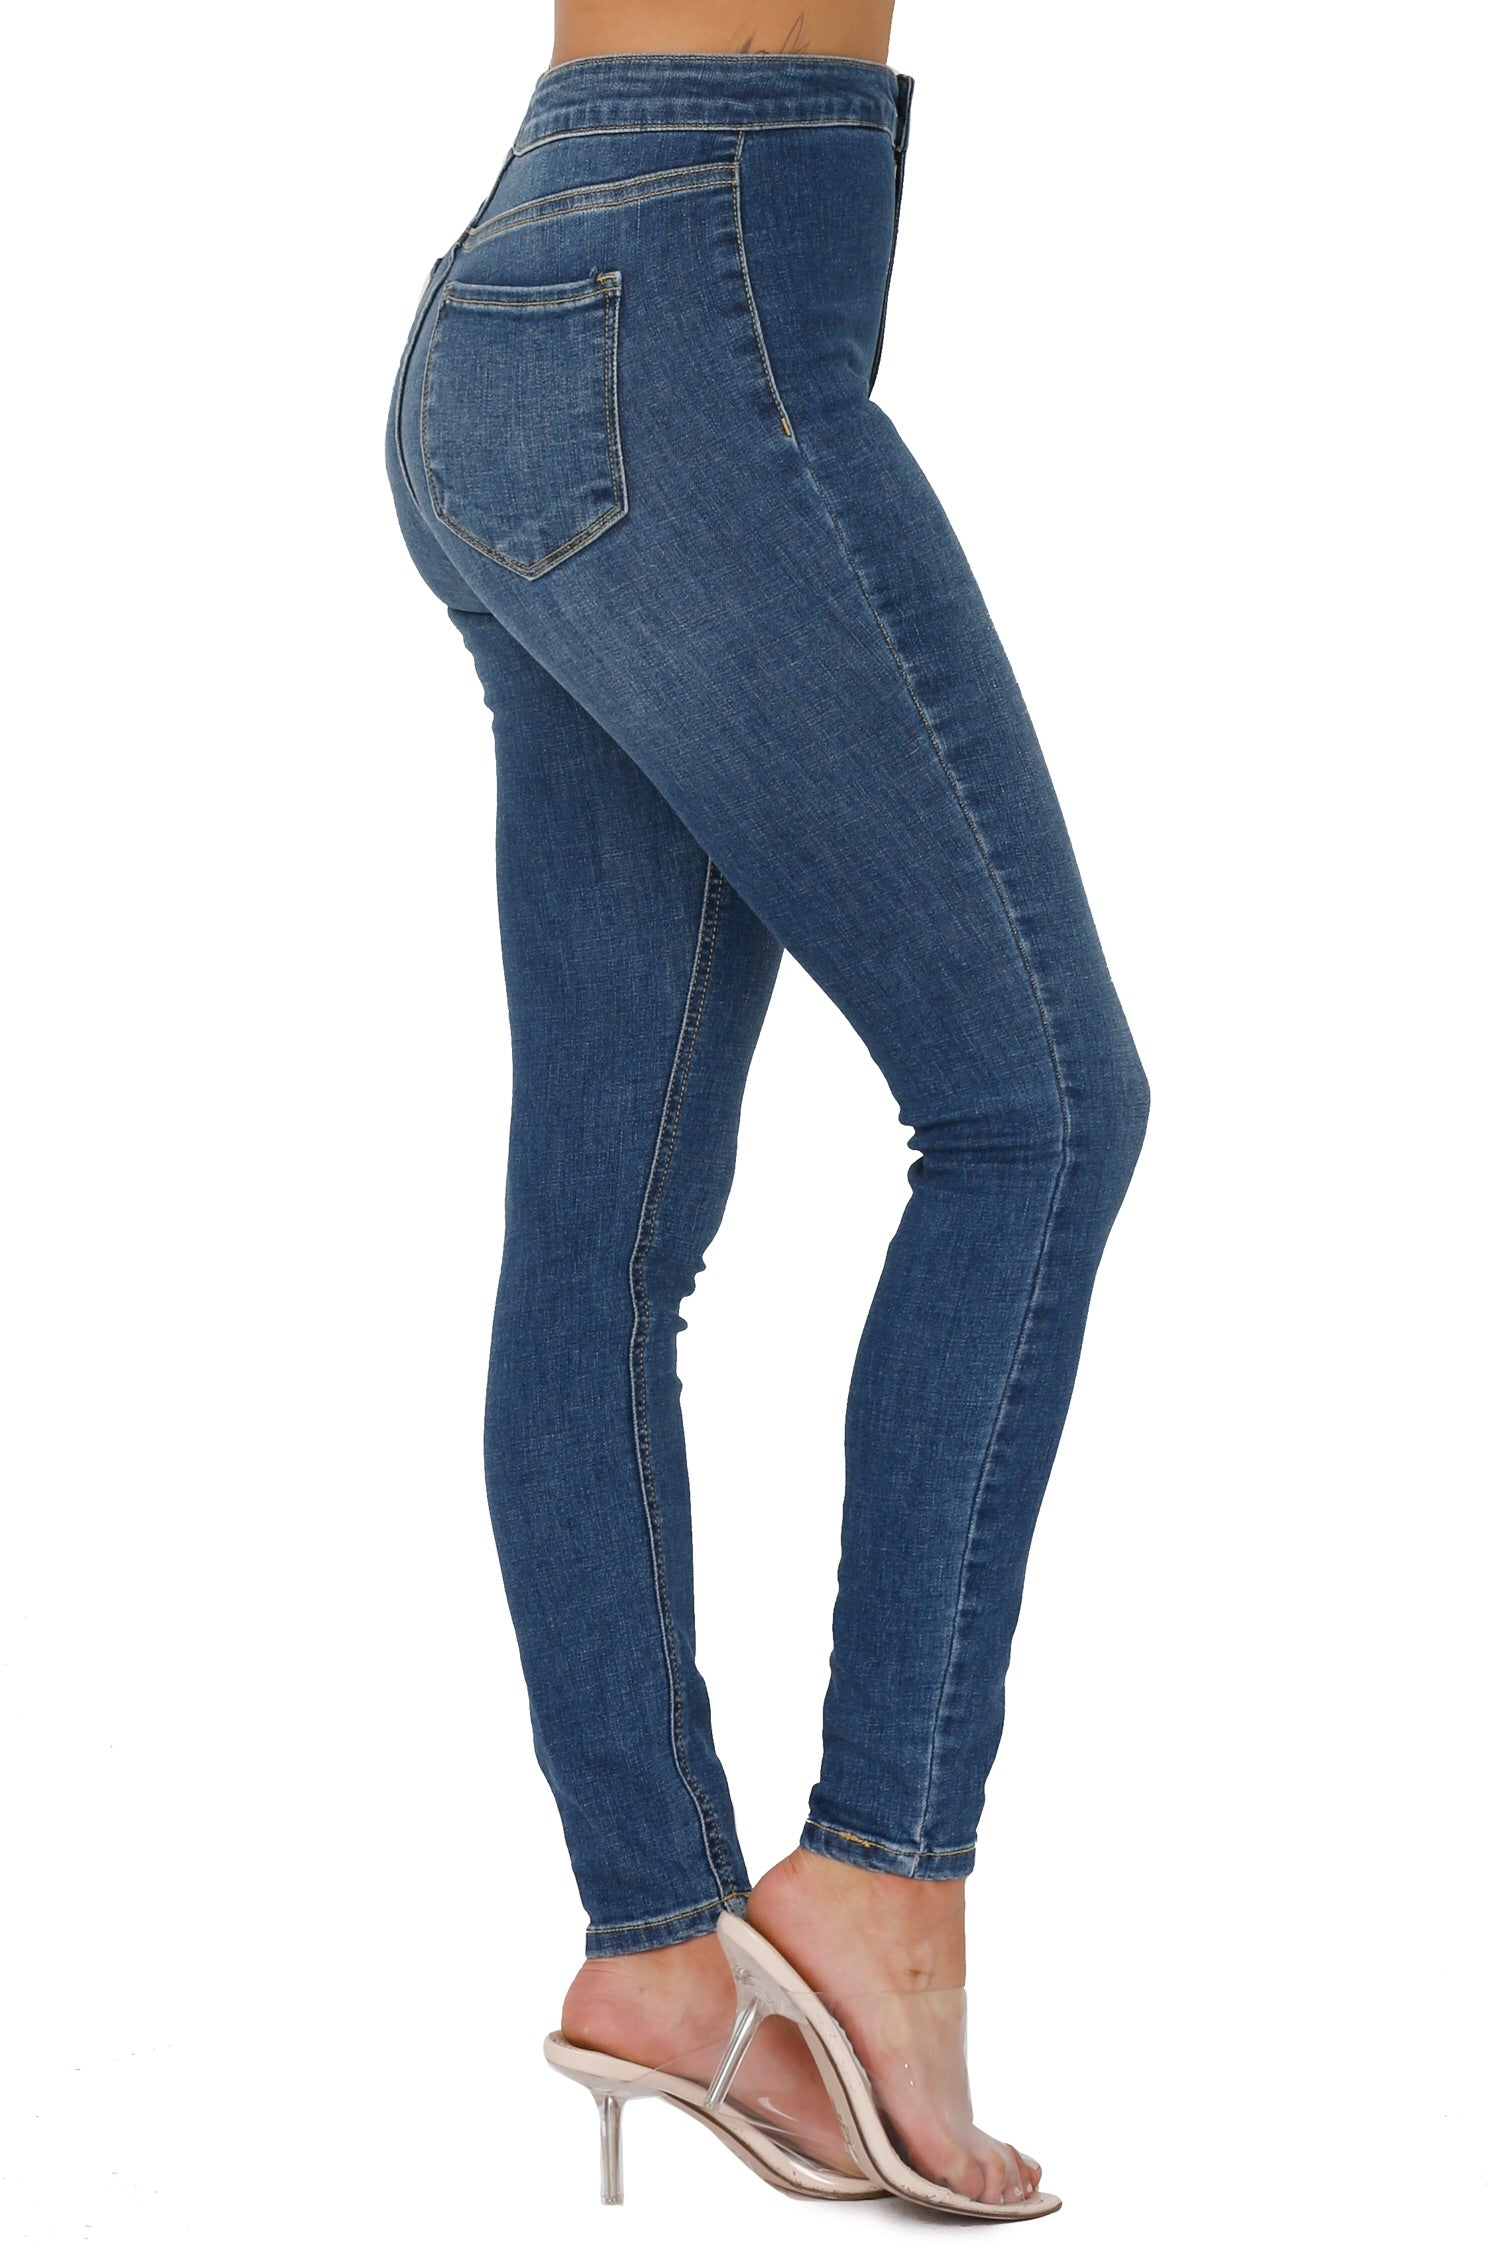 RETRO VIBES HIGH RISE JEANS